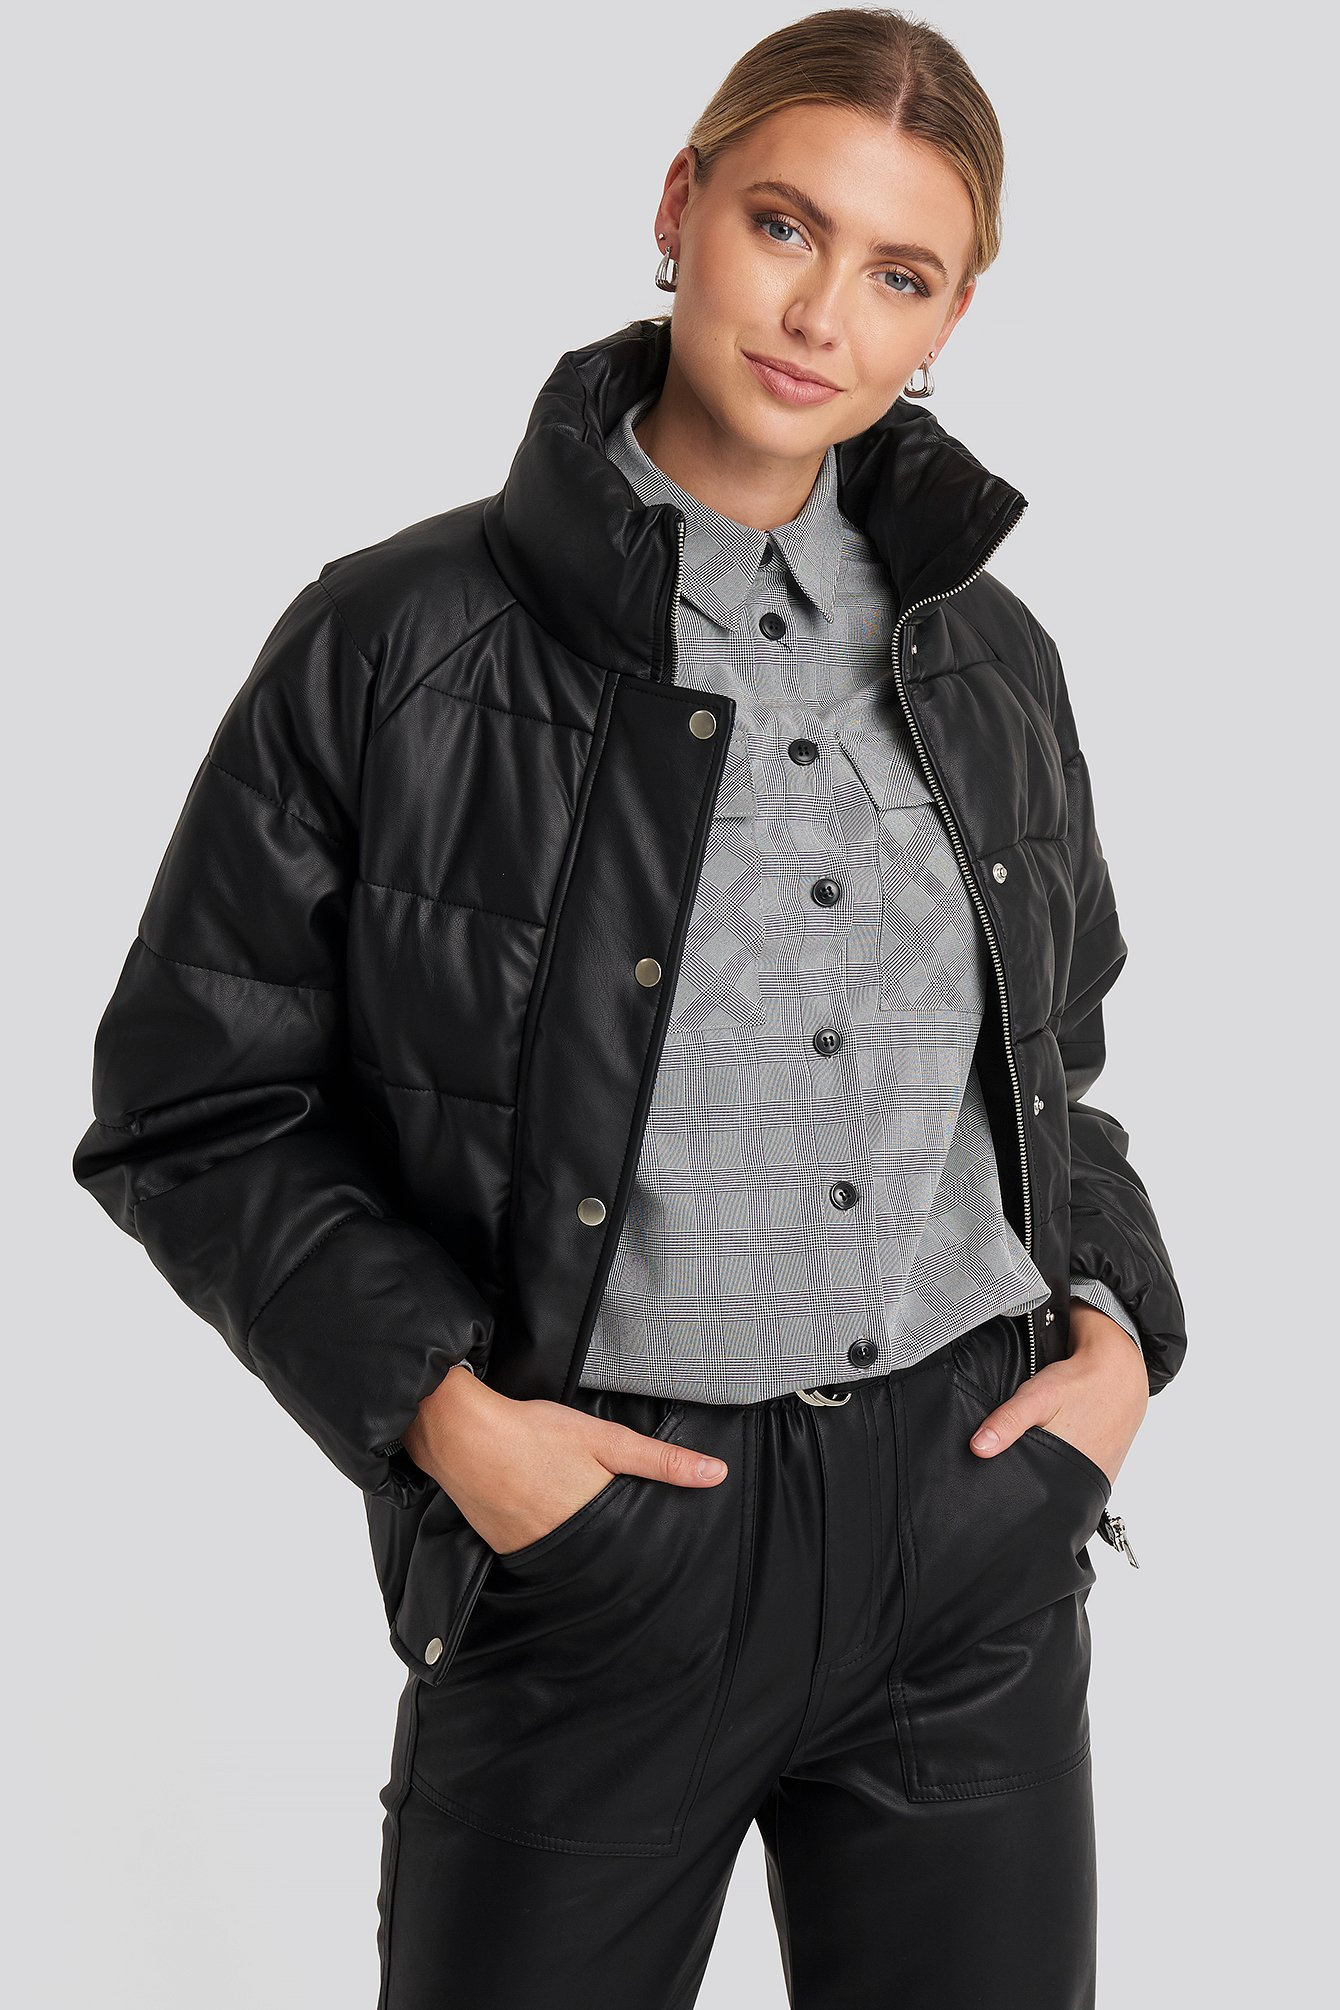 Black Padded PU Leather Jacket